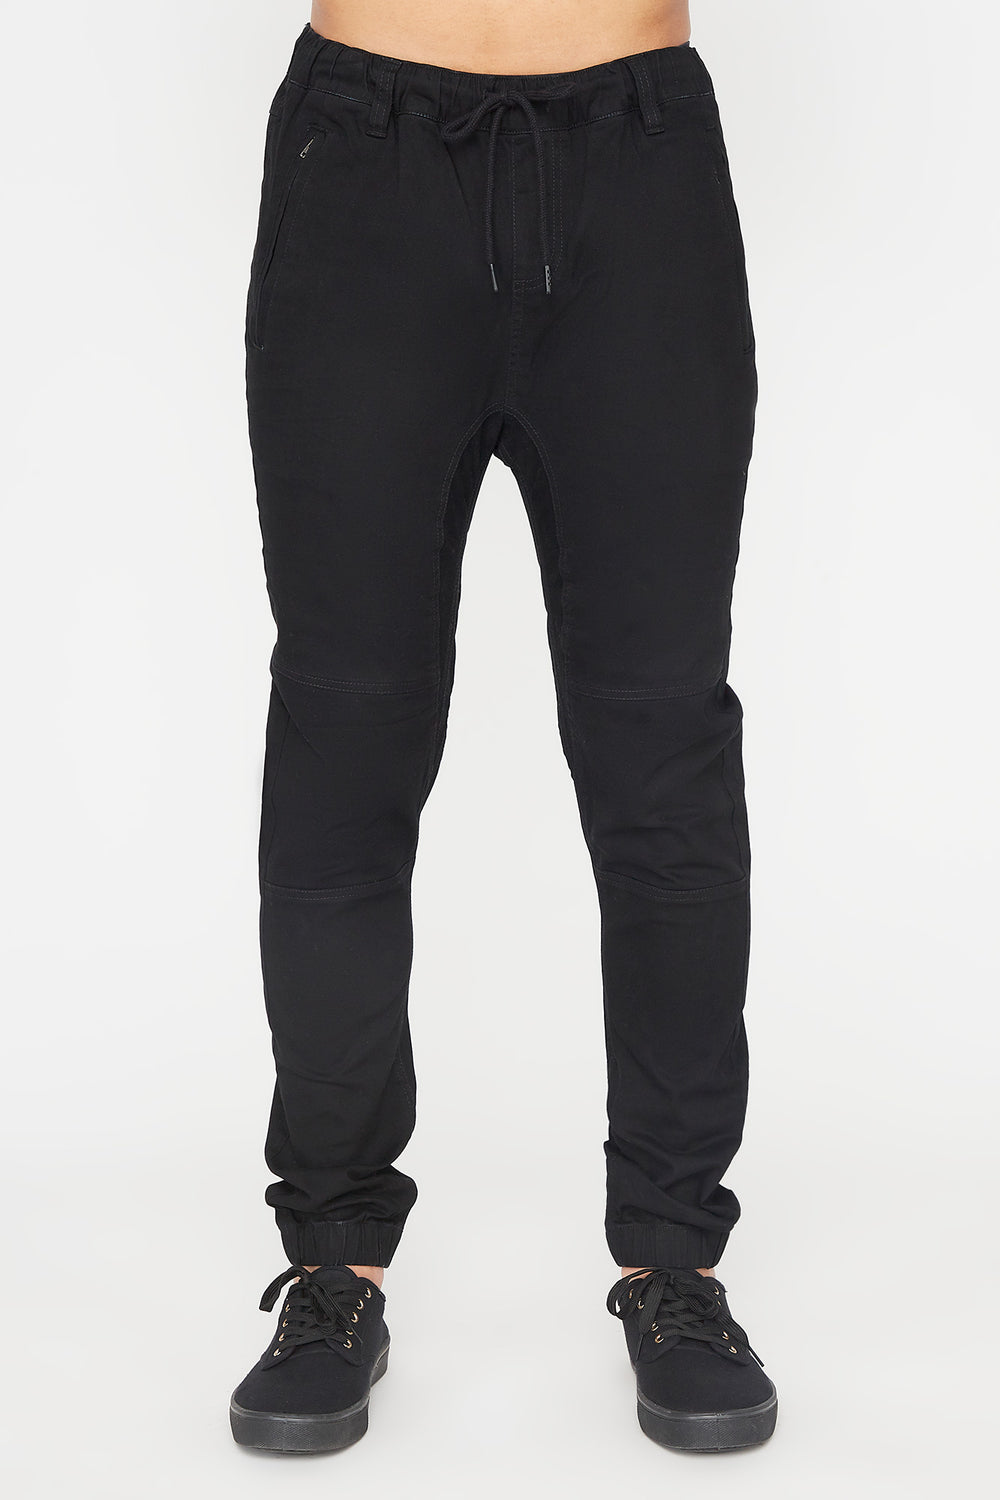 Zoo York Mens Solid Zip Jogger Black